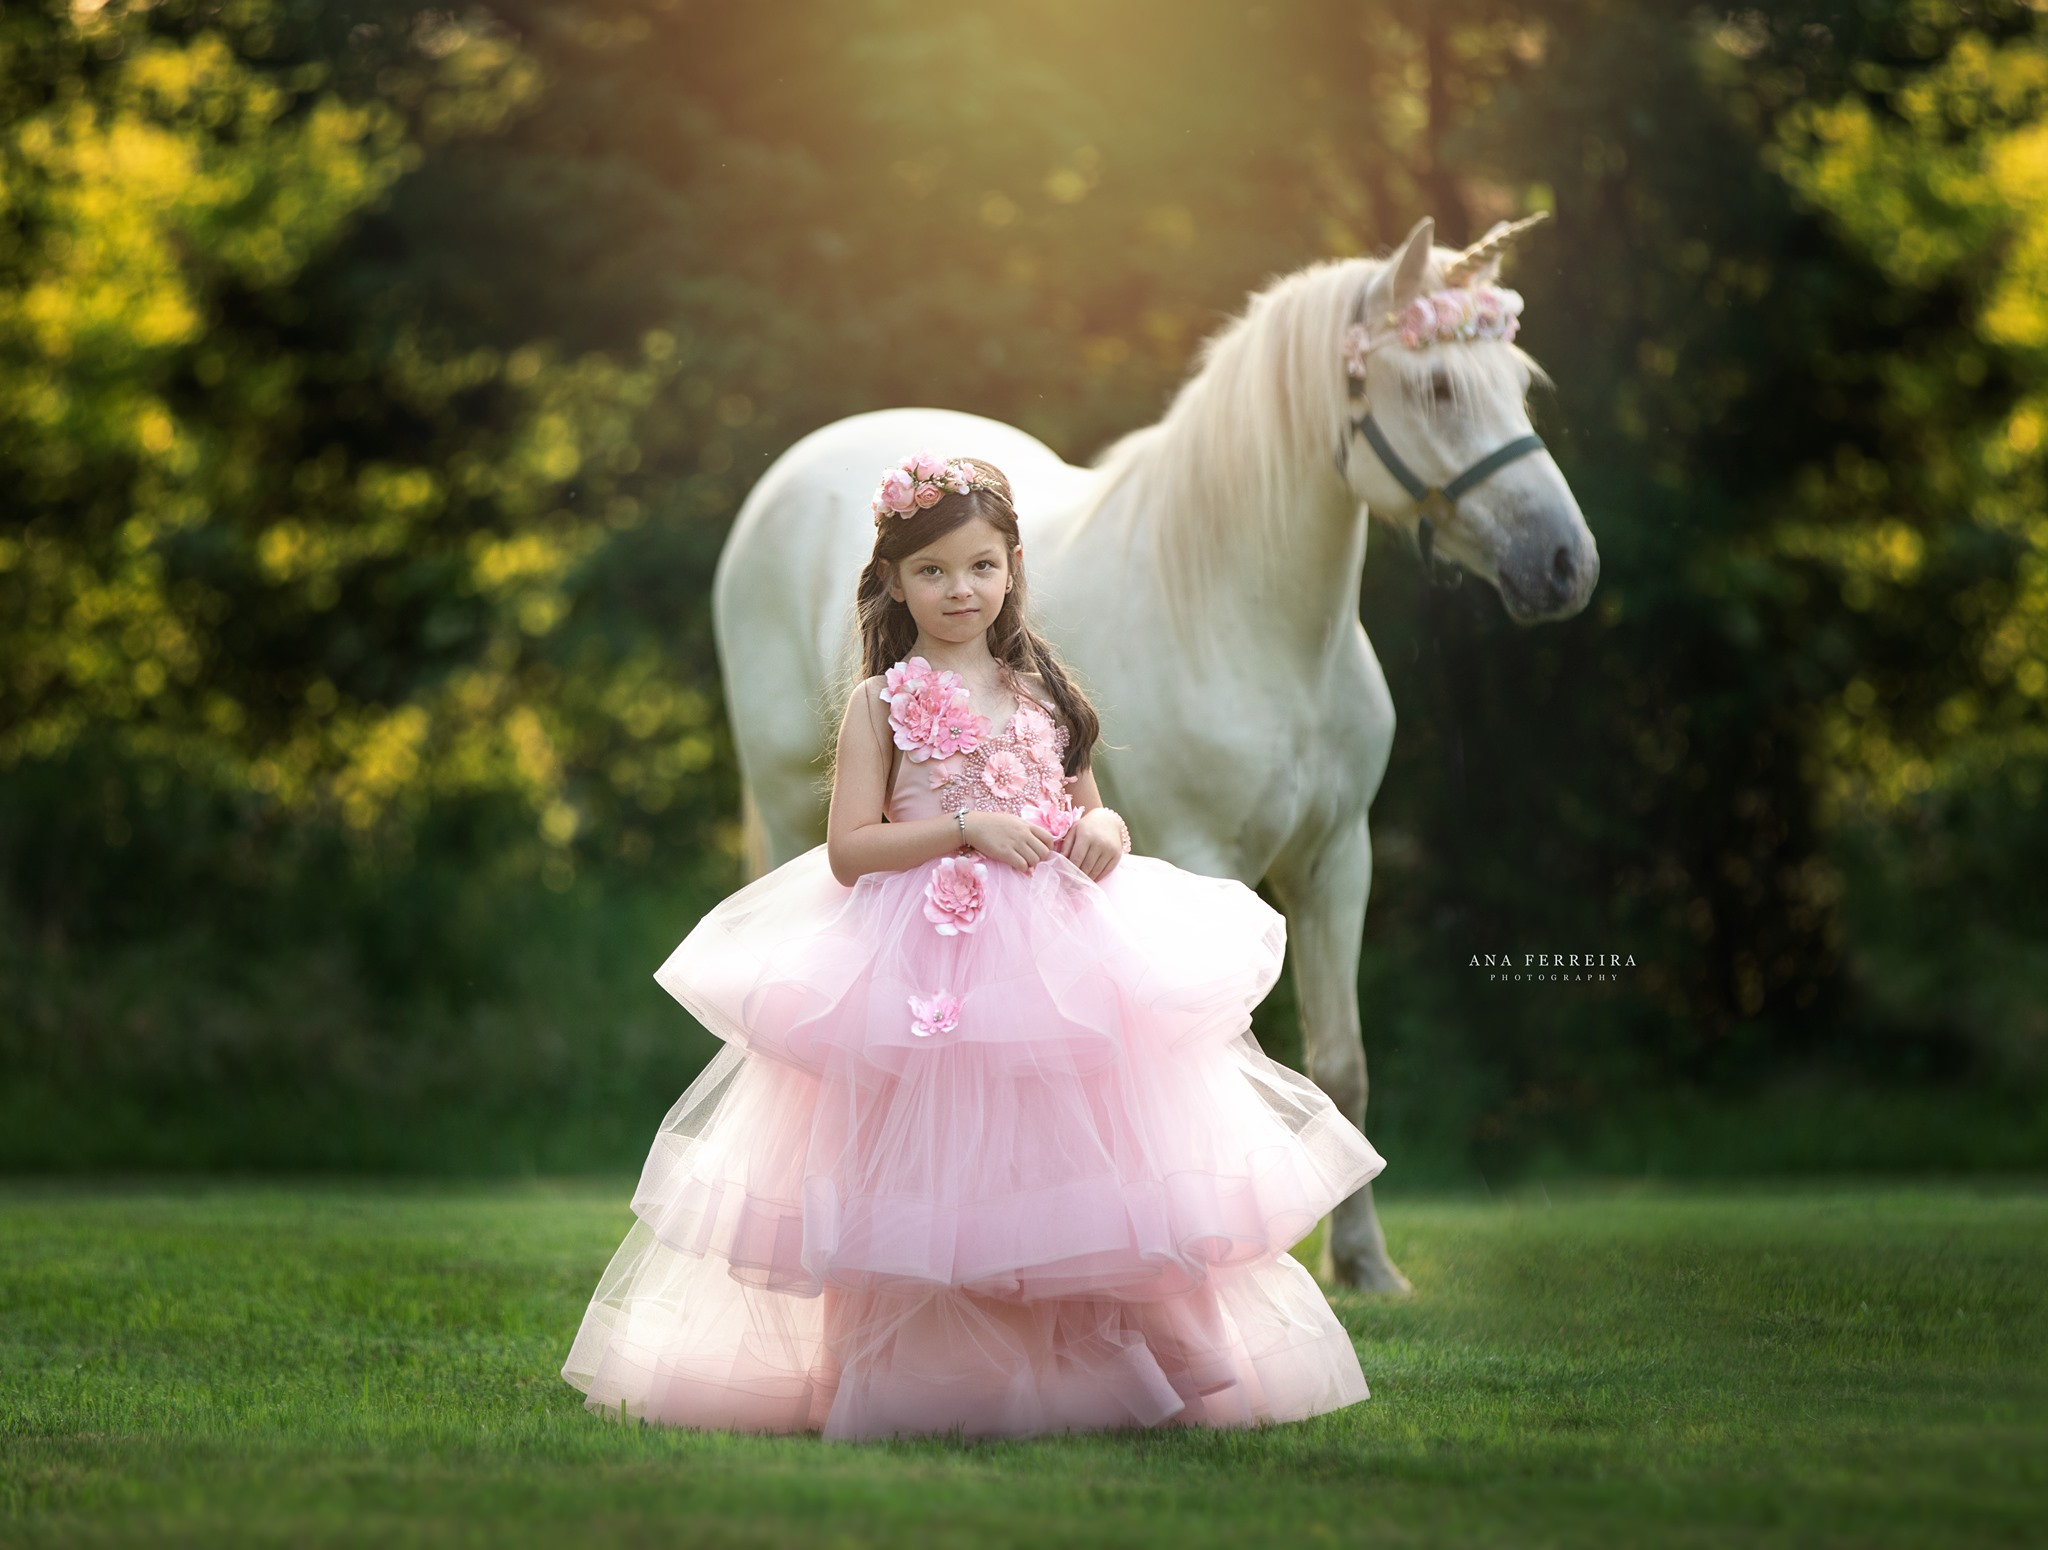 Unicorn photo shoot in the park